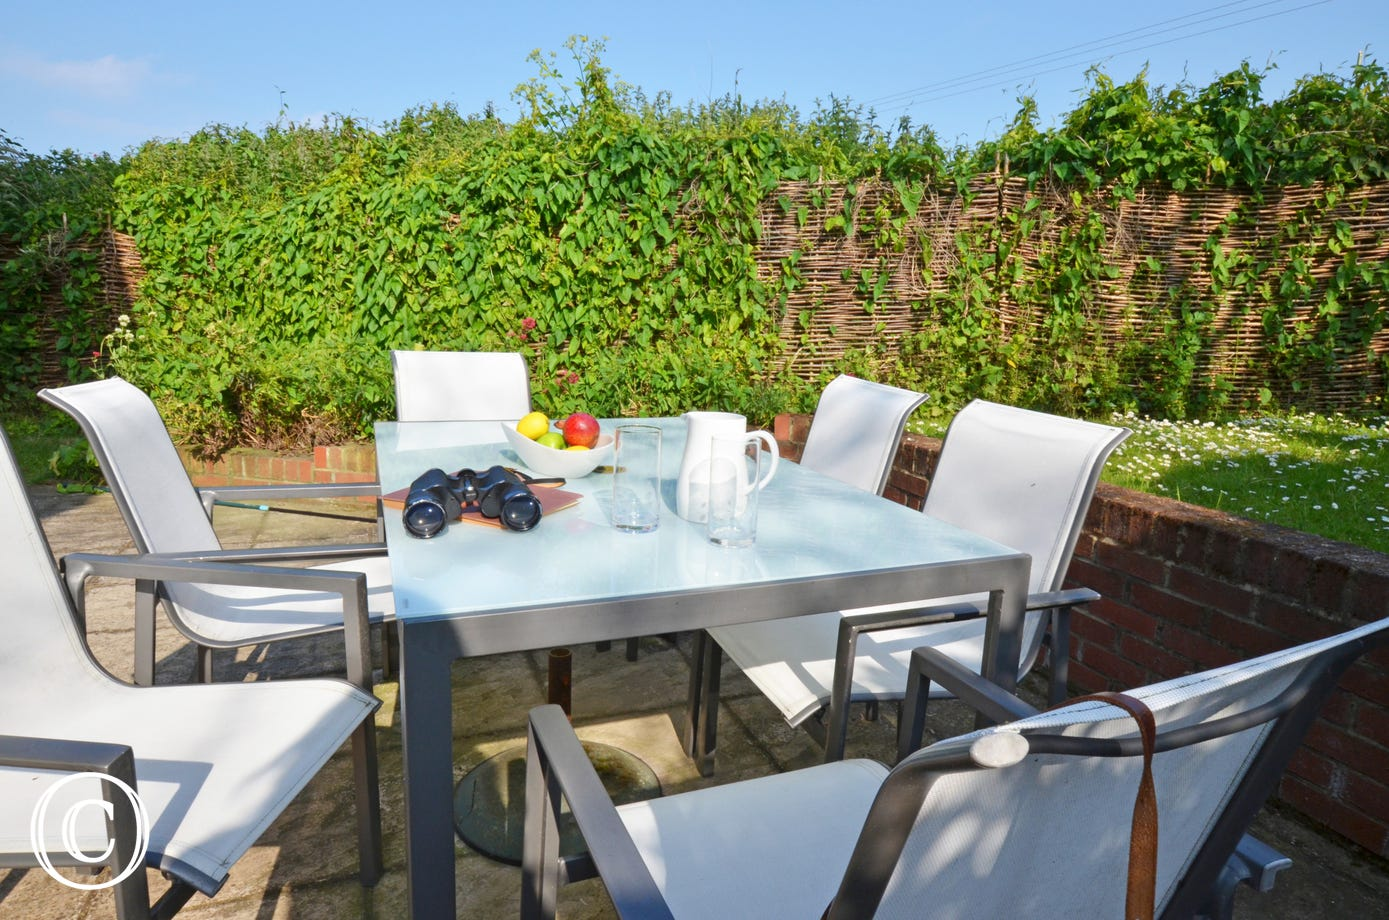 Patio table and chairs - perfect for dining alfresco